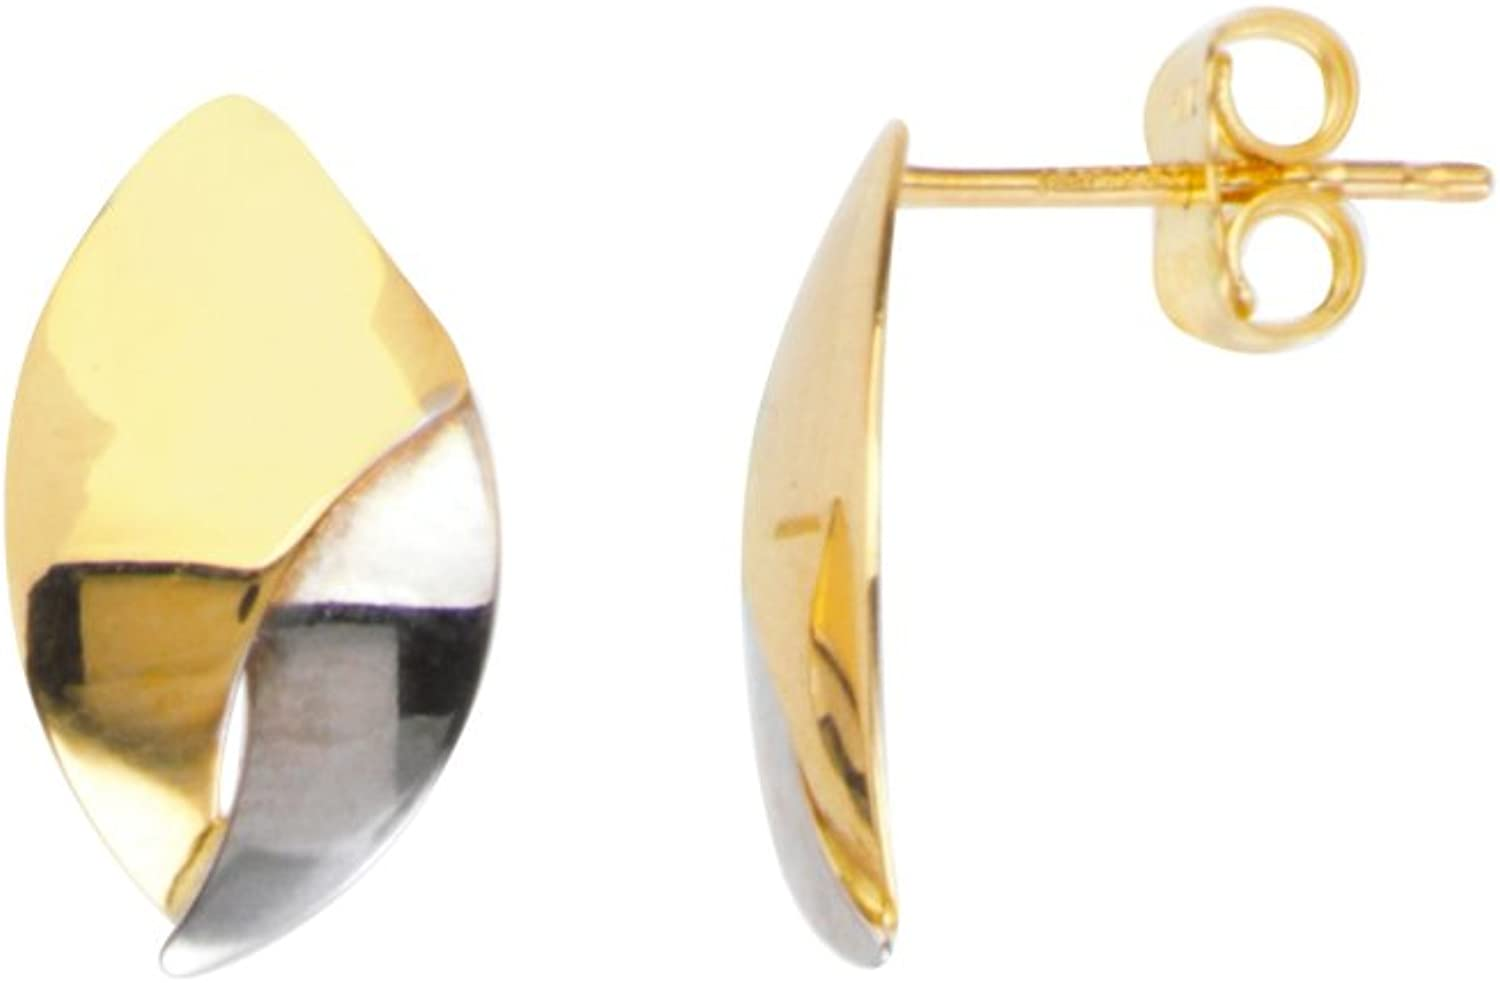 Earring Chest 14K White and Yellow Gold Two-tone Overlaping Plates Leaf Shaped Stud Earrings